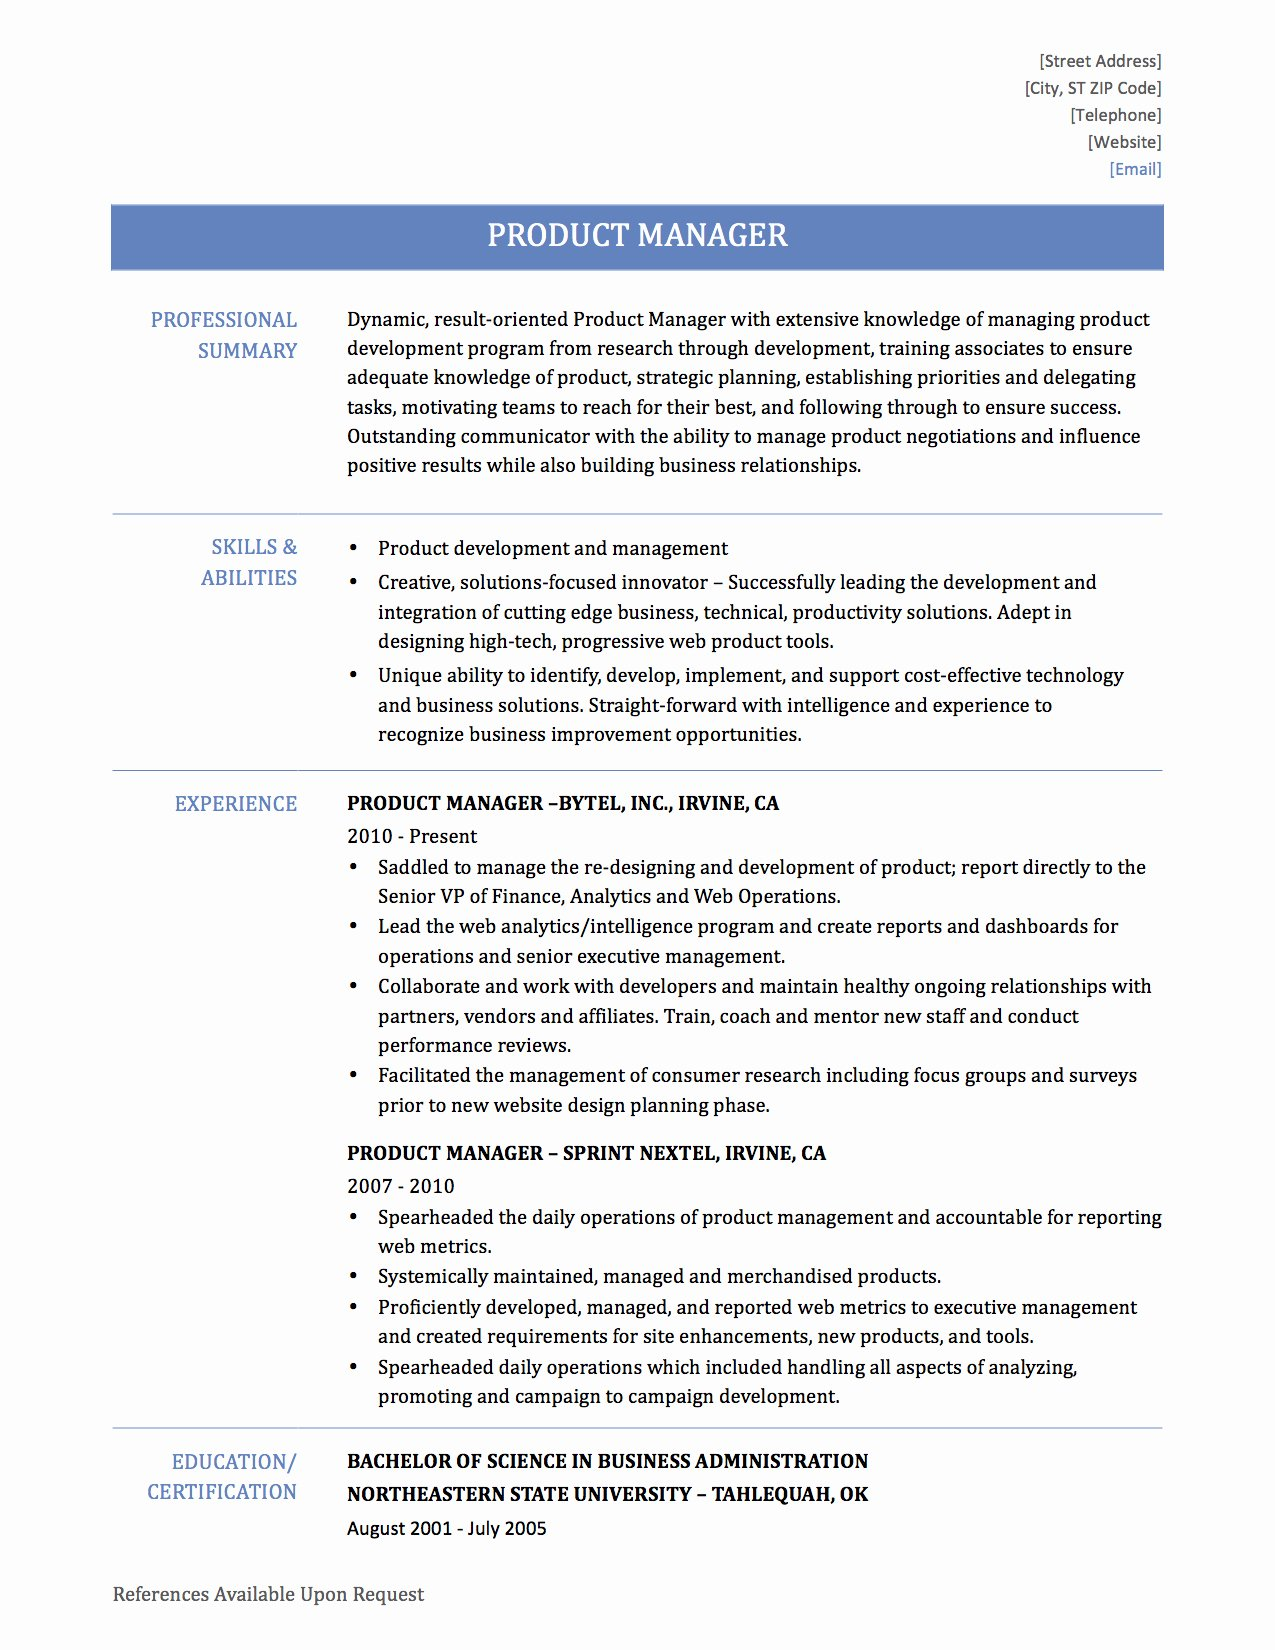 Product Manager Resume Template New Product Manager Resume Samples